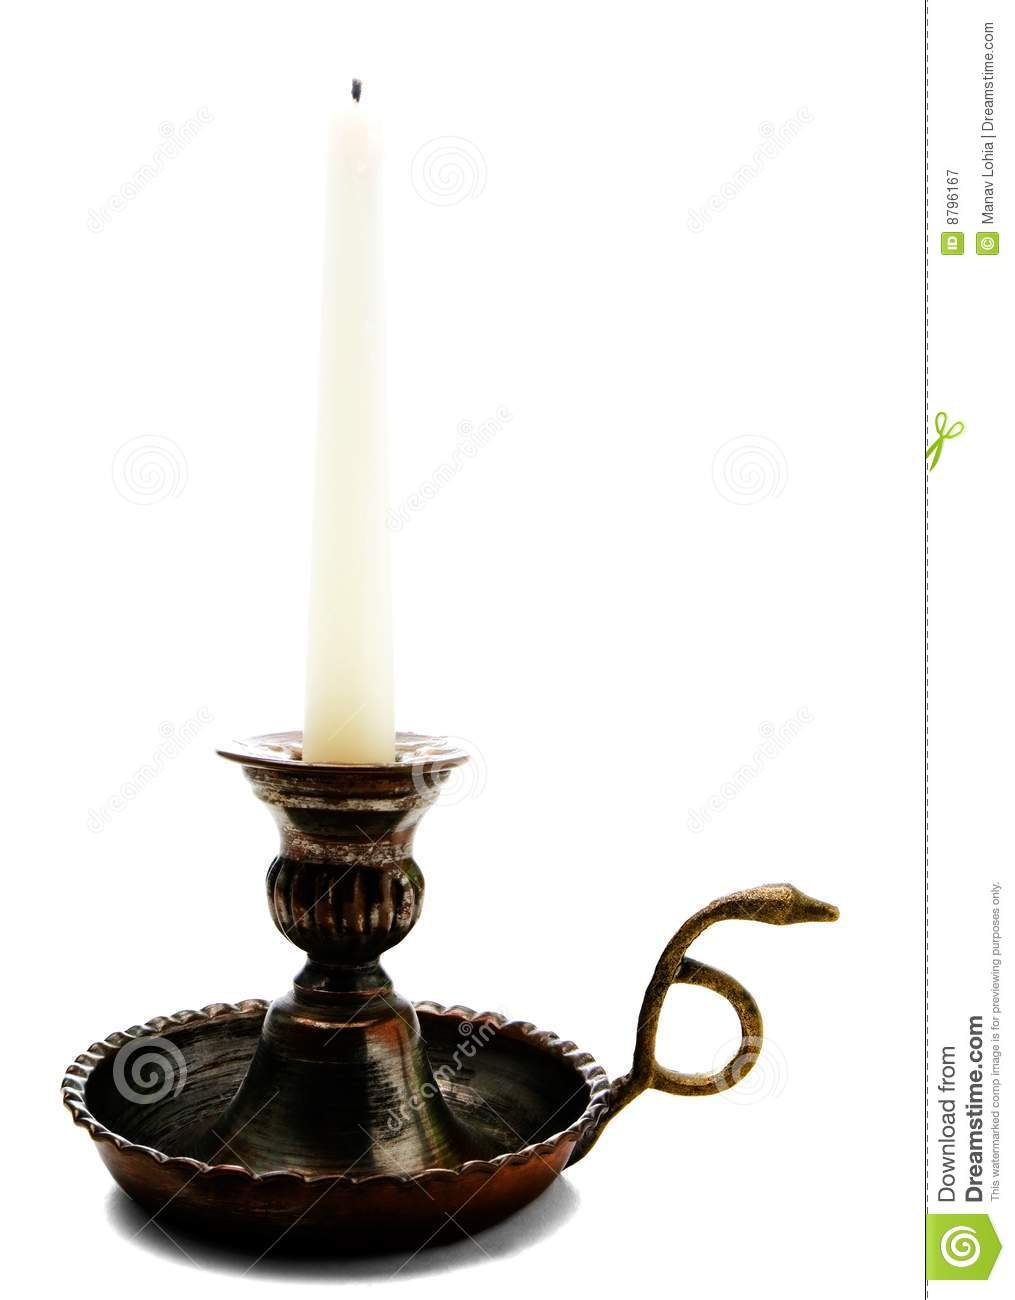 Candle on candle stick holder